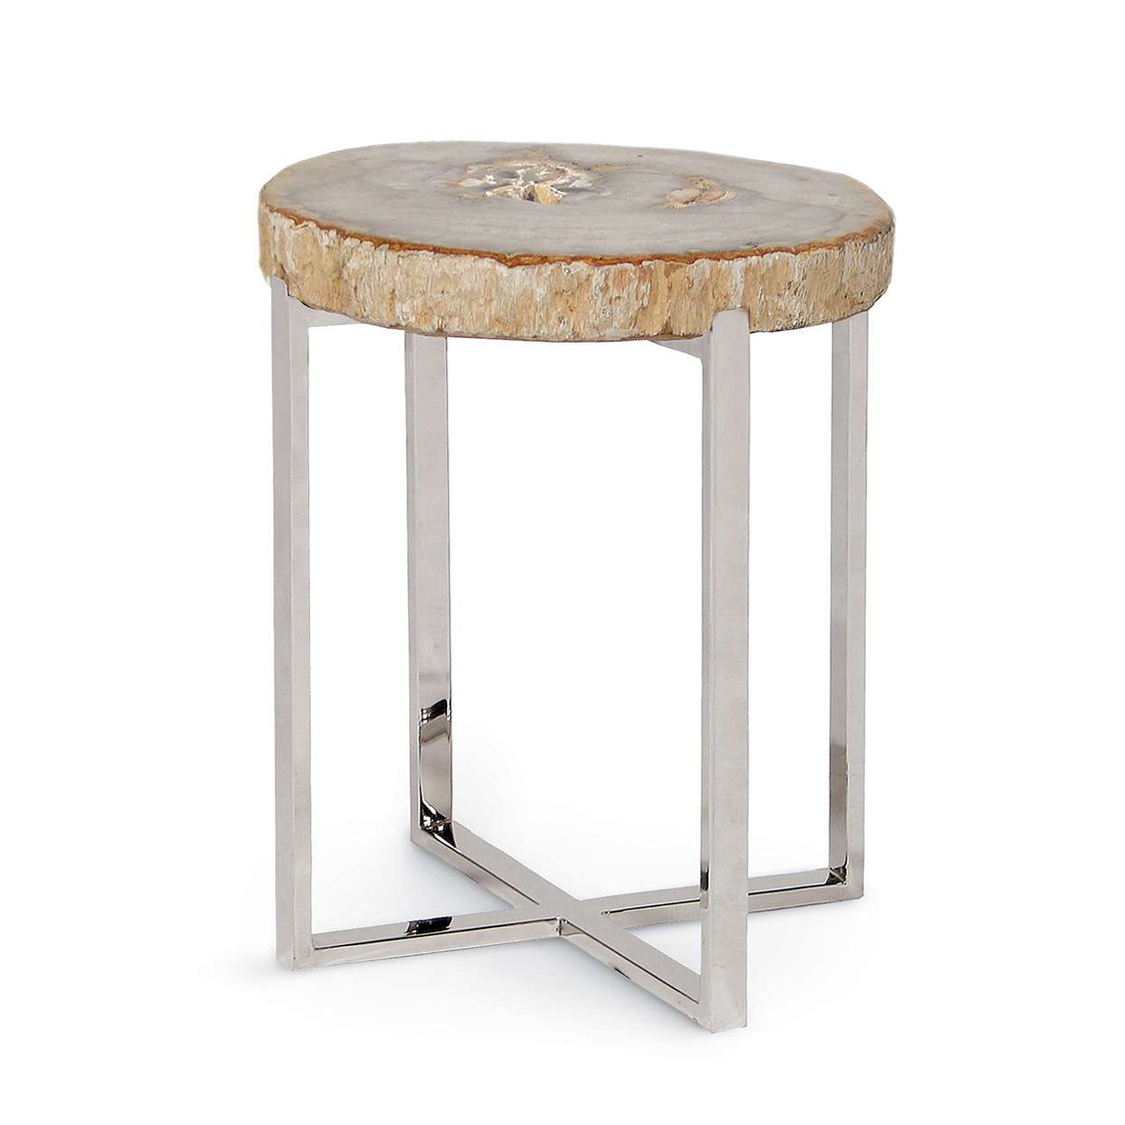 natural artistry accent table with stainless steel legs small wood modern dining room outdoor lounge setting big lots dresser west elm white console silver leaf coffee magnetic